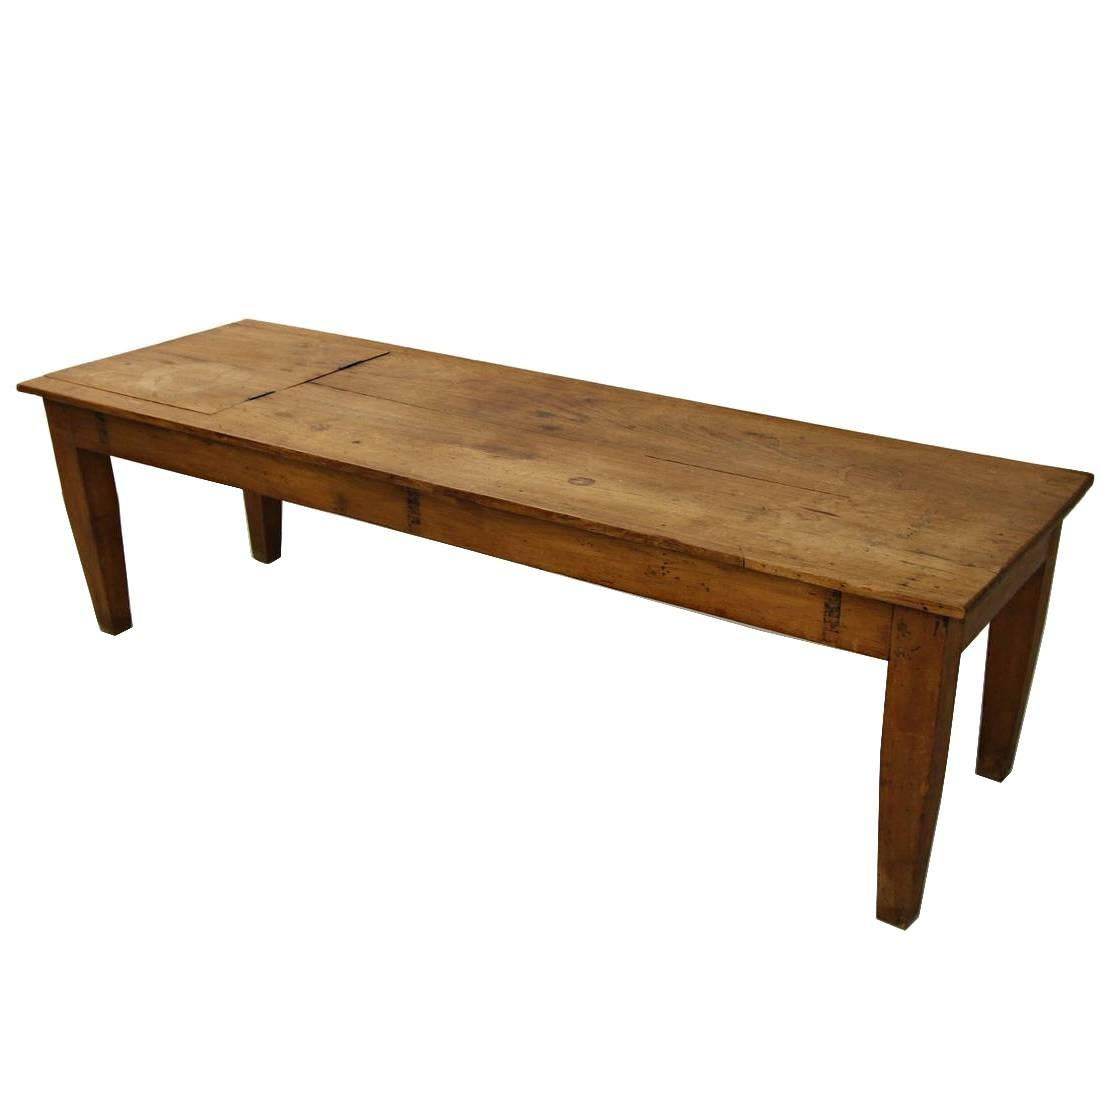 Primitive Antique Industrial Farmhouse Style Coffee Table For Sale